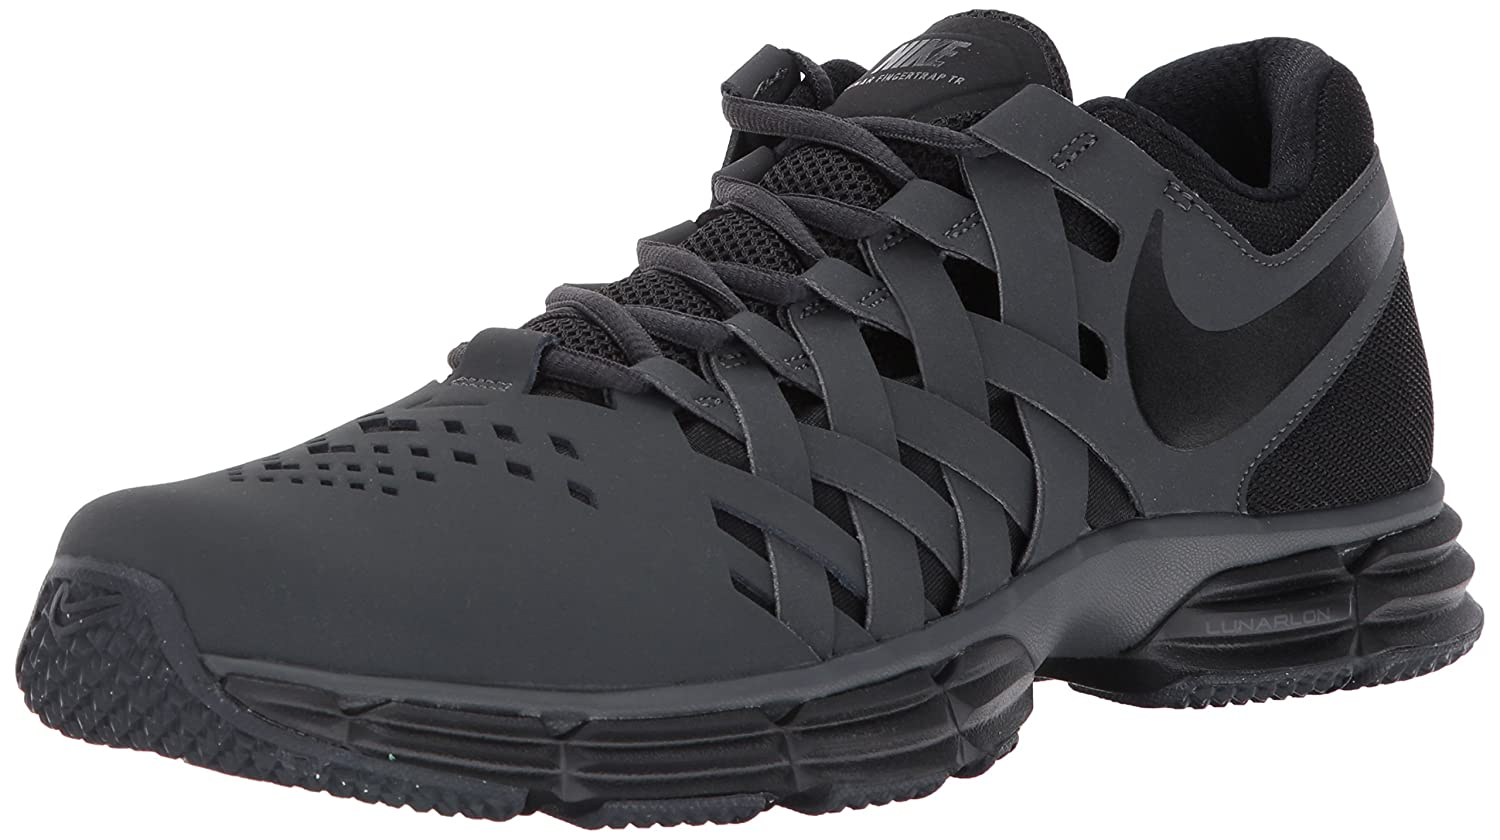 NIKE Men's Lunar Fingertrap Cross Trainer B01N7KMVBD 11.5 D(M) US|Anthracite/Black